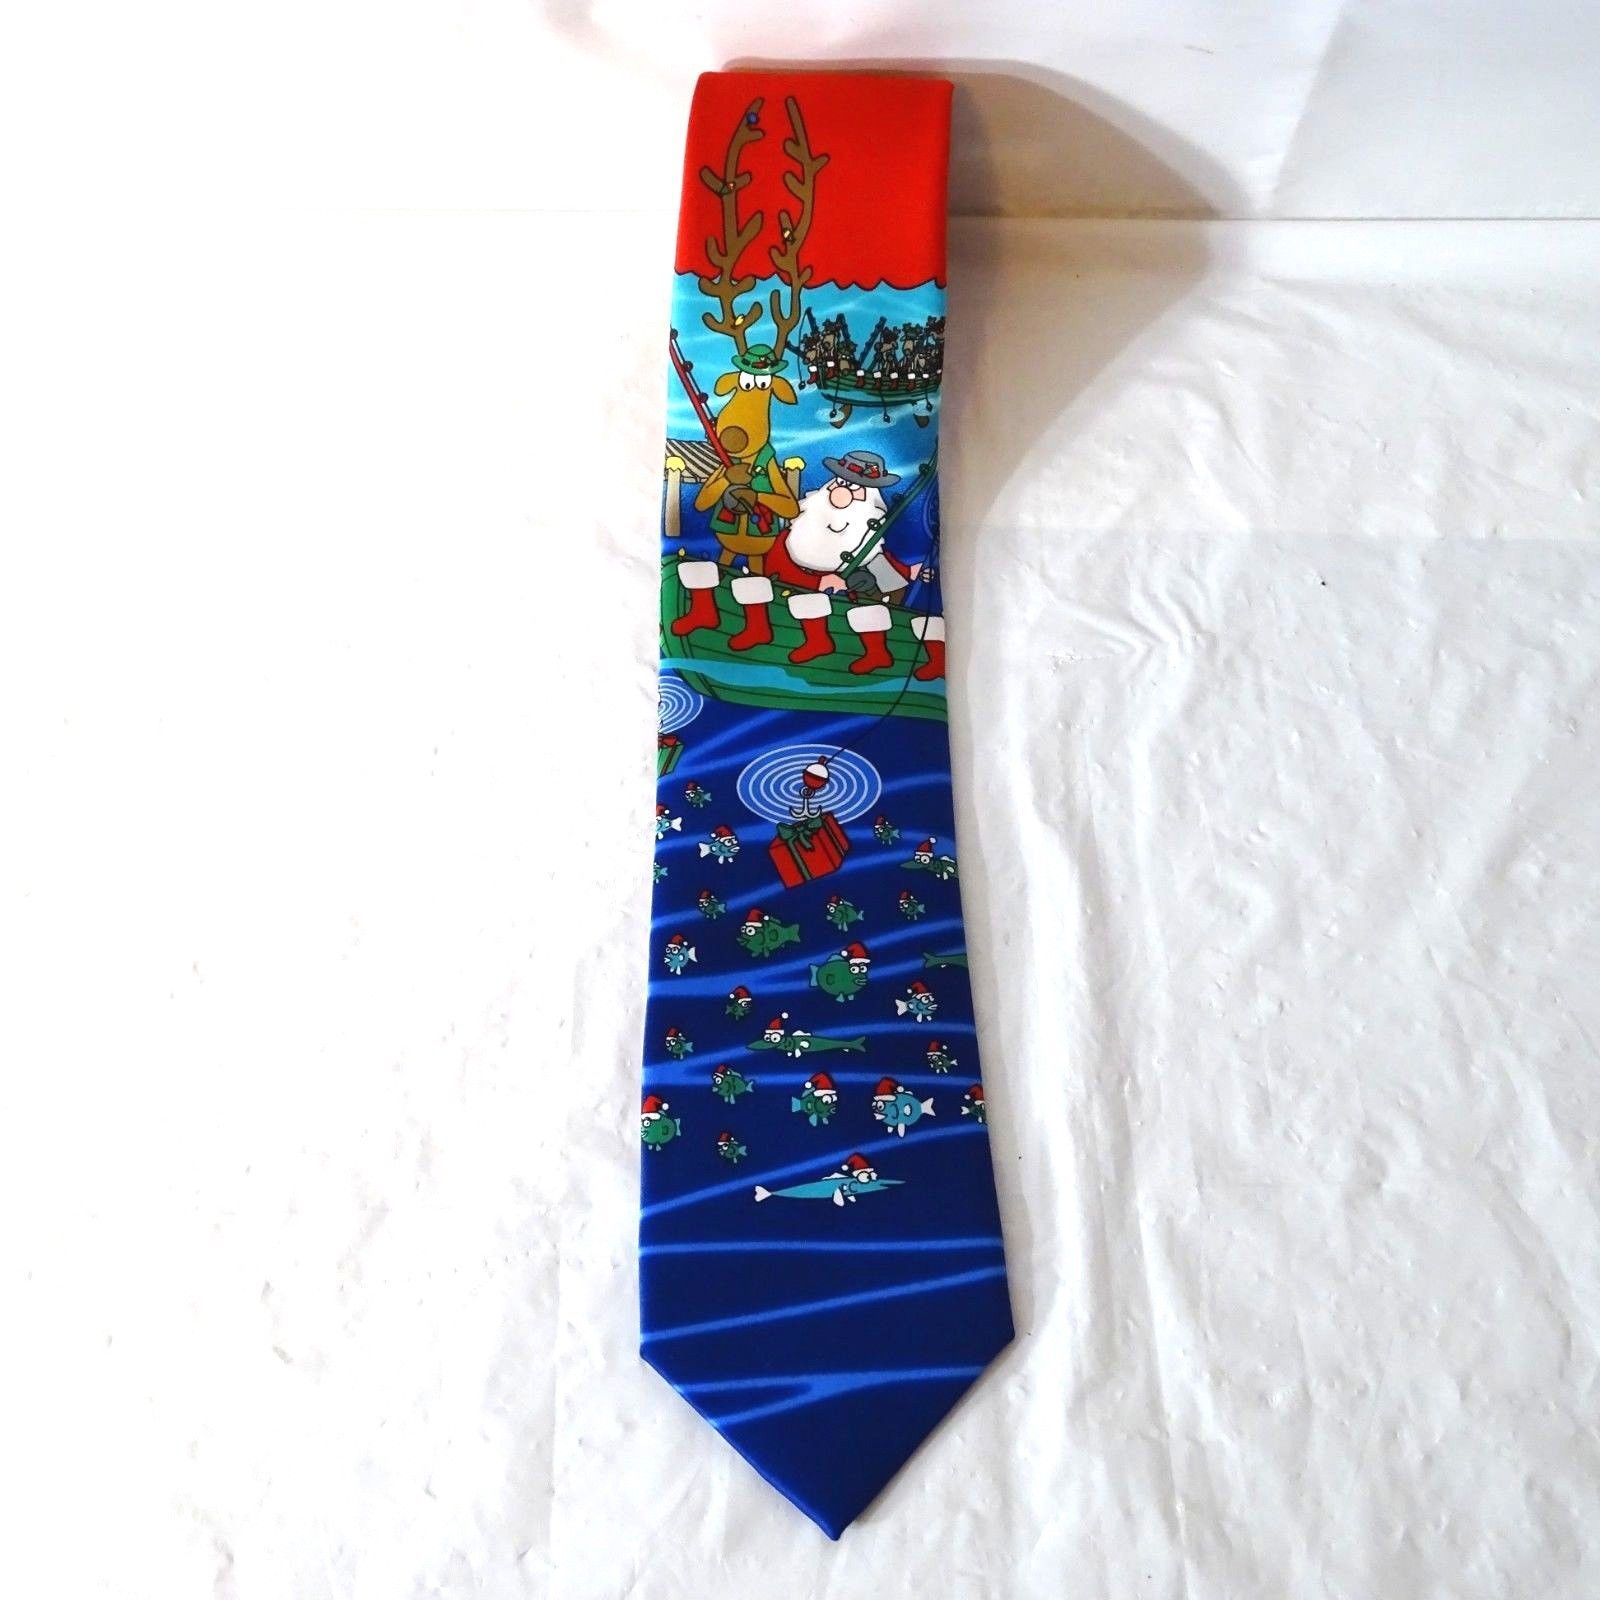 Hallmark Holiday Traditions by MMG Christmas Tie Santa and Reindeer Fishing